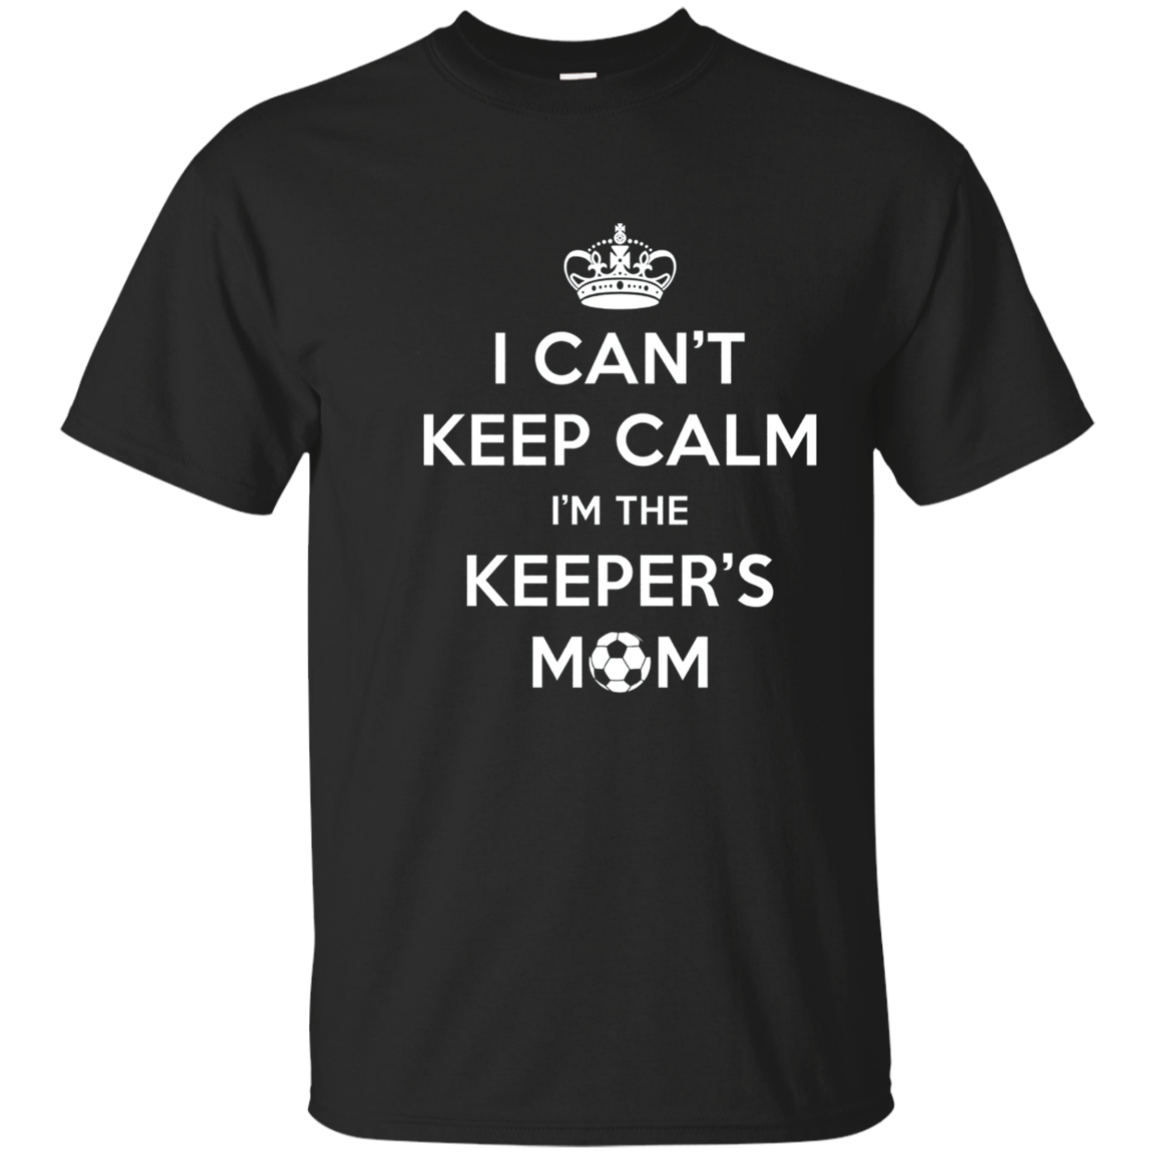 Women's I Can't Keep Calm I'm The Keeper's Mom T-shirt